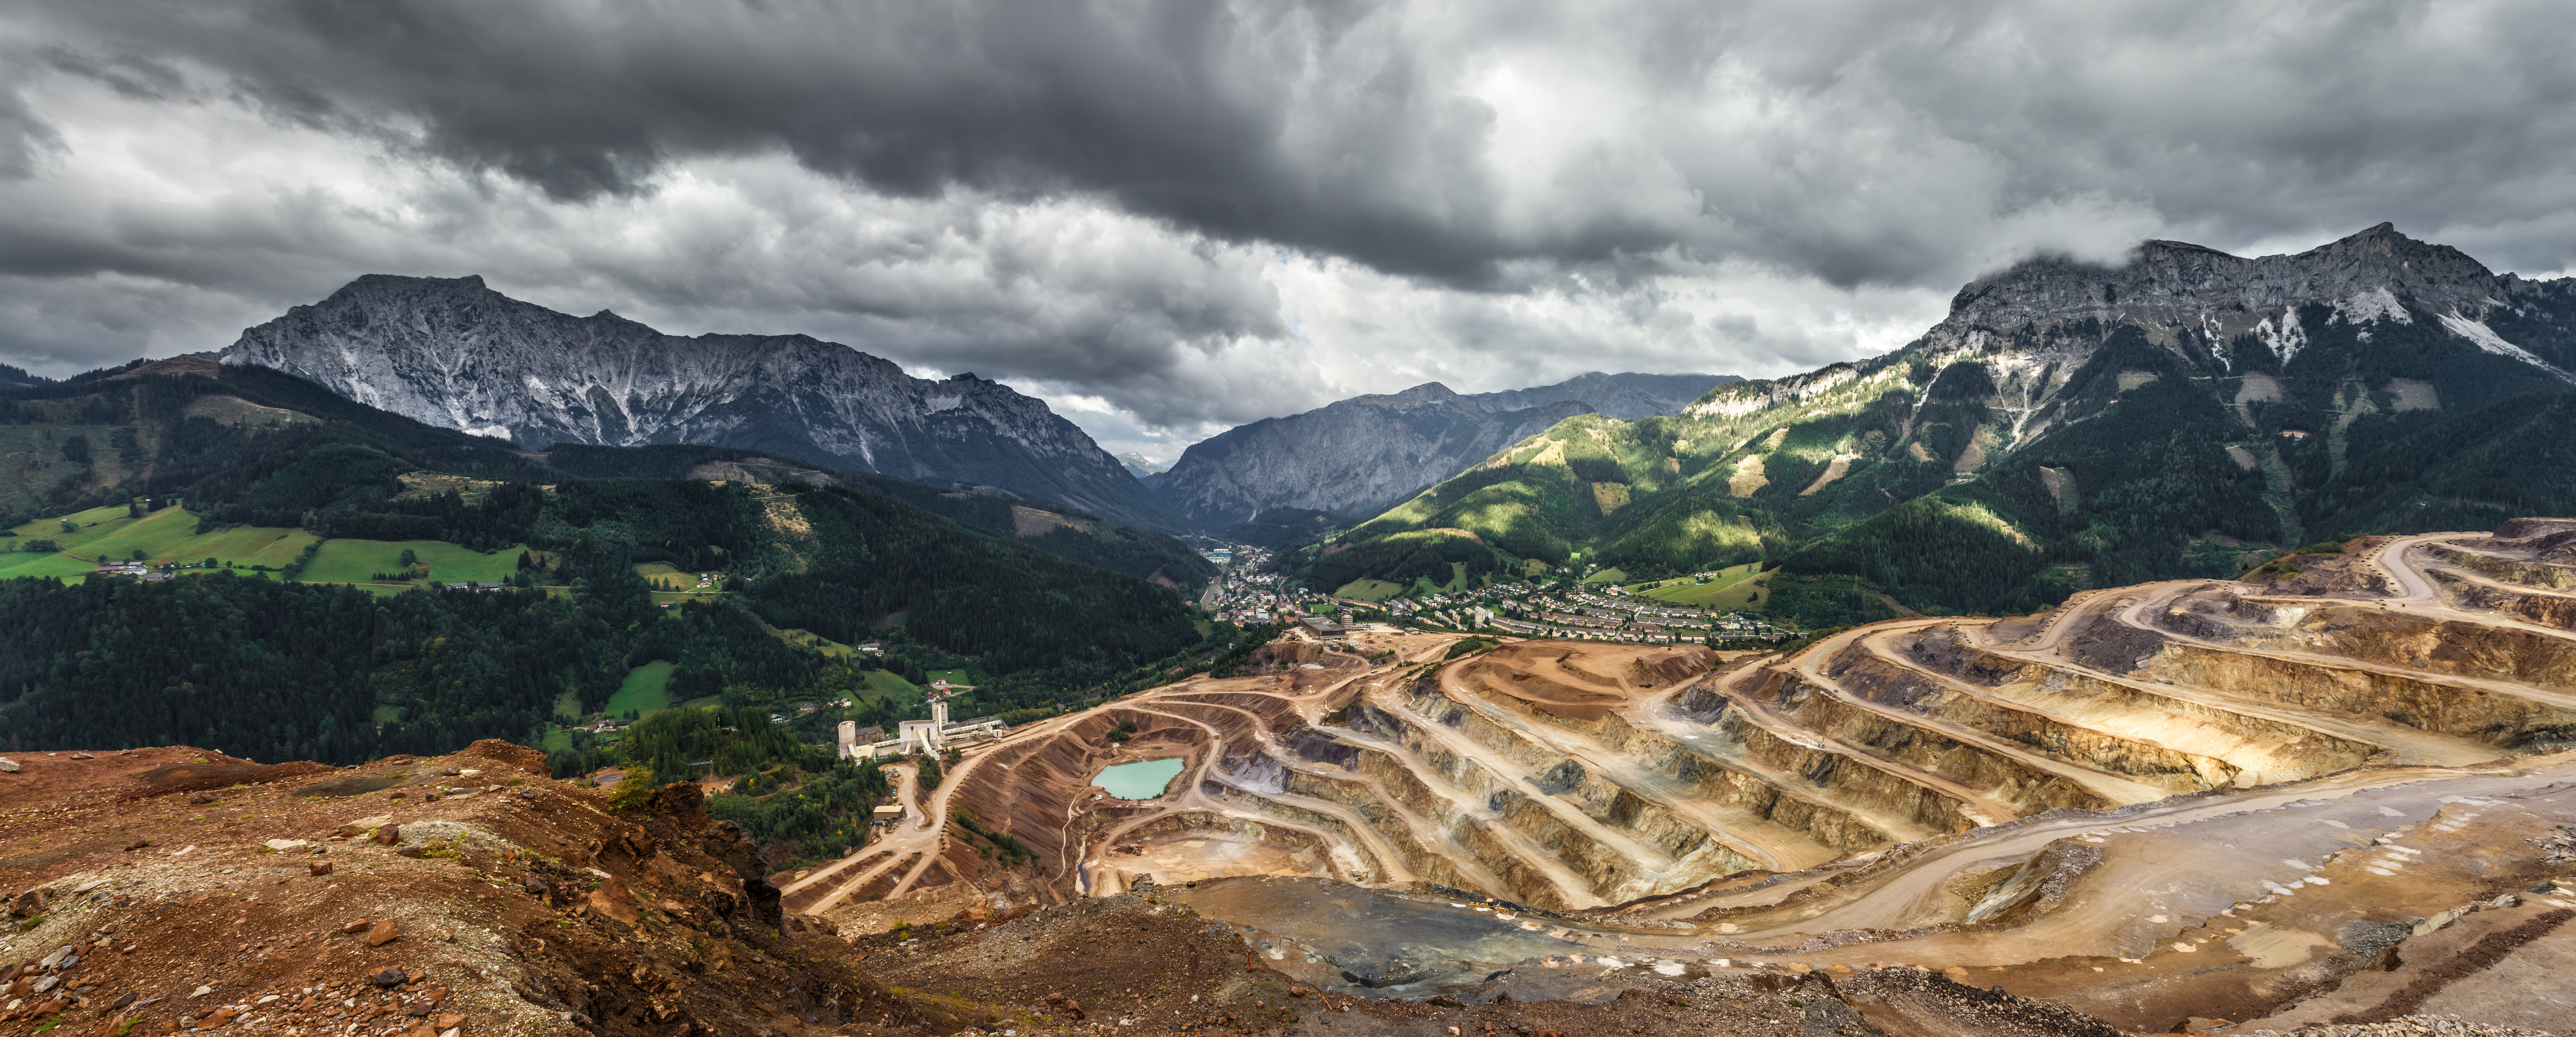 The devastating effect of irresponsible mining practices to go forth - Mining images hd ...